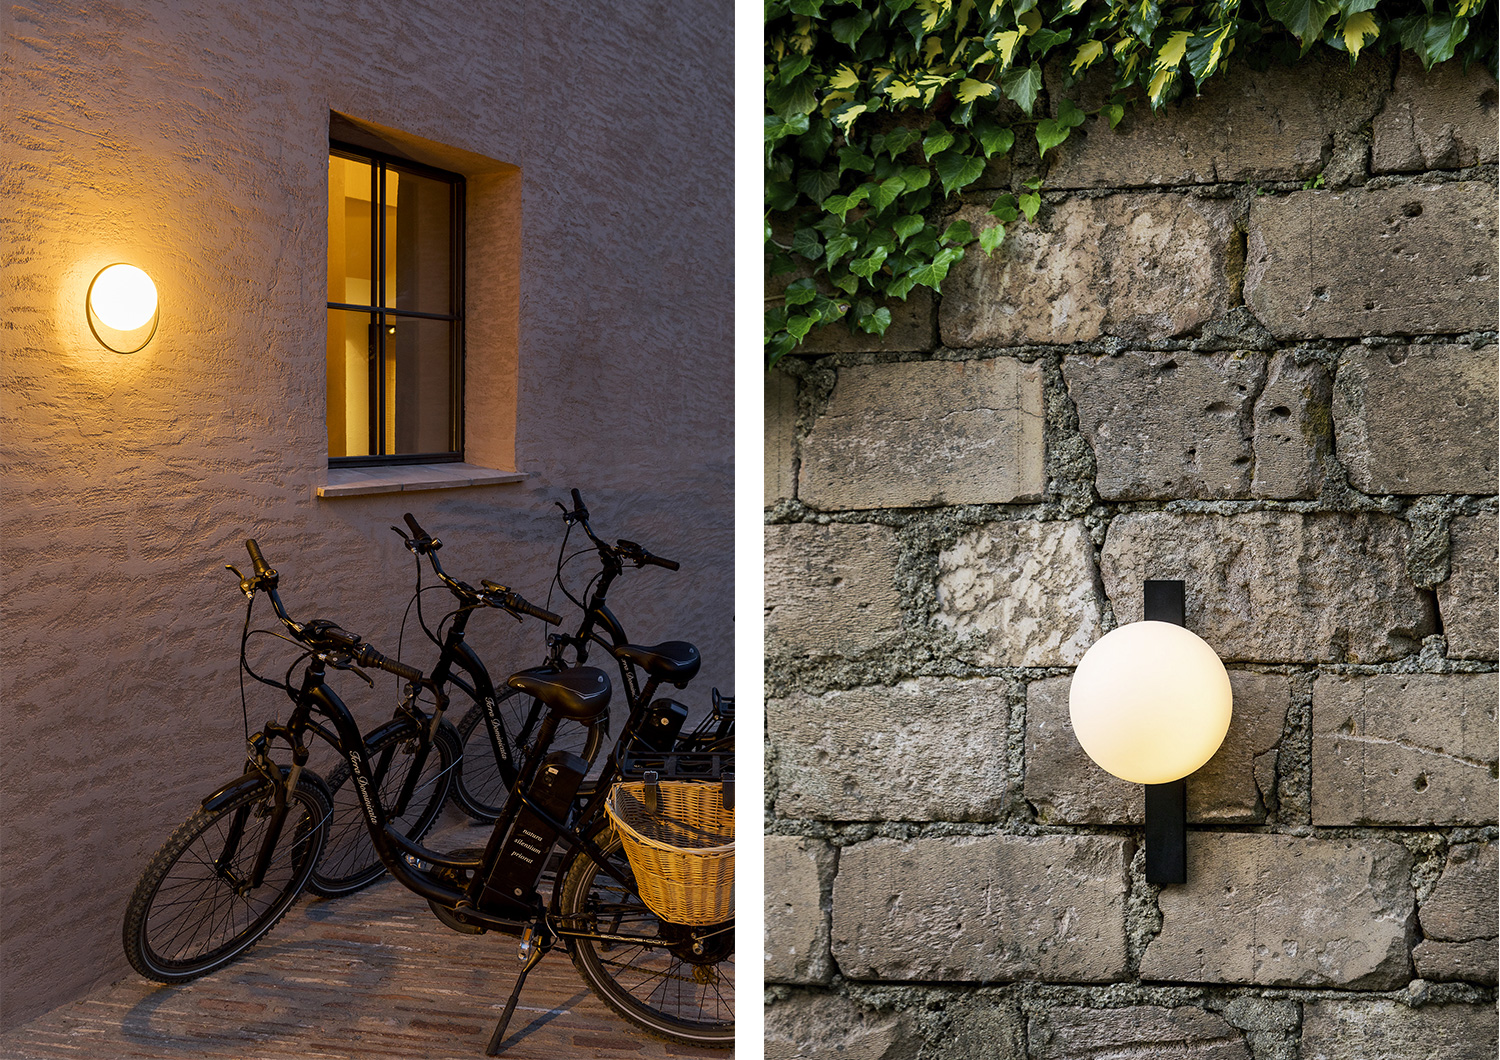 Outdoor Decorative Lamps Gallery 02